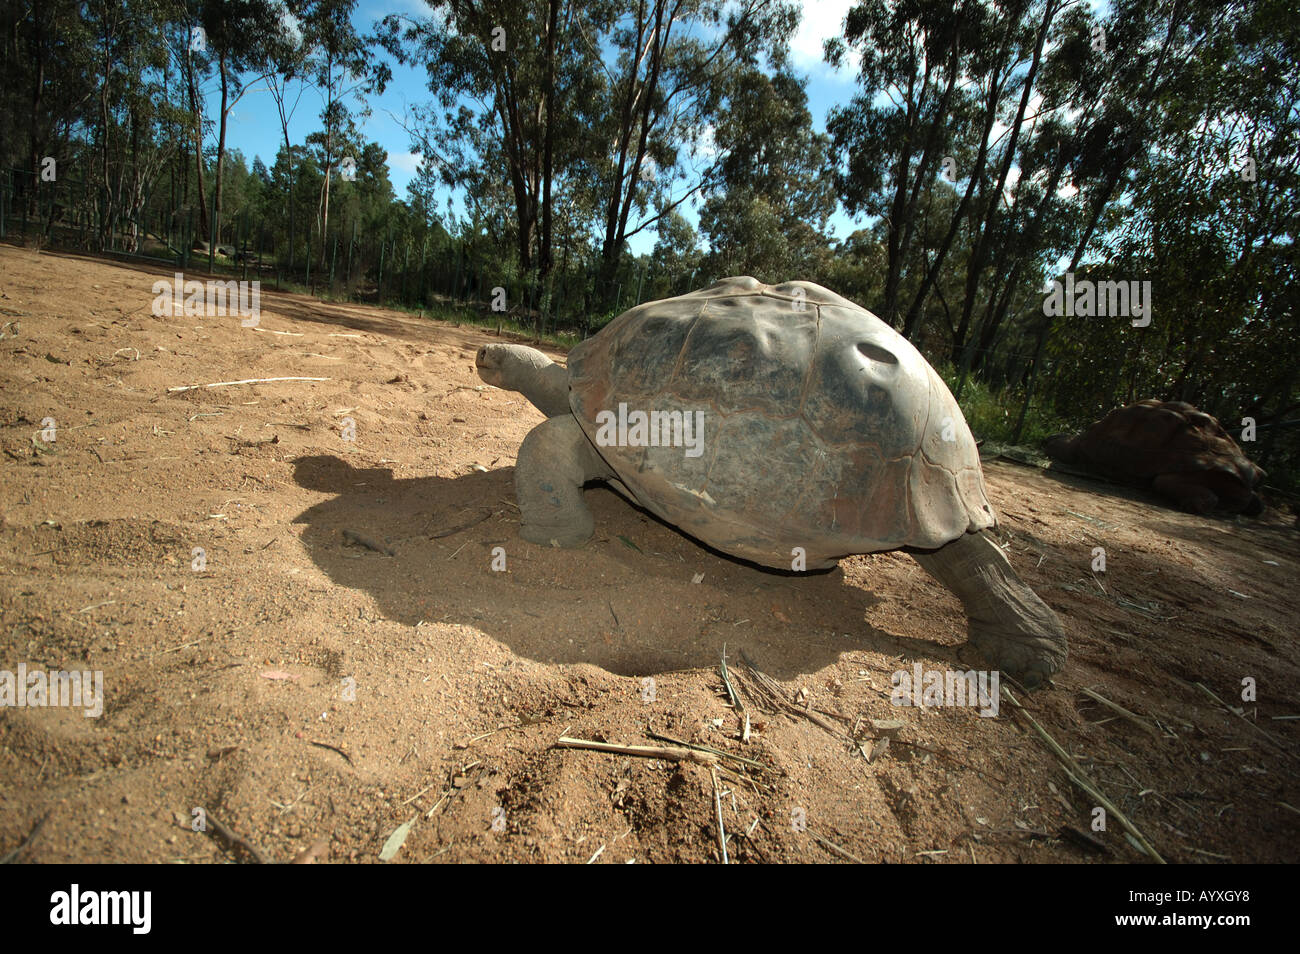 100 year old Giant Galapagos tortoise - Stock Image